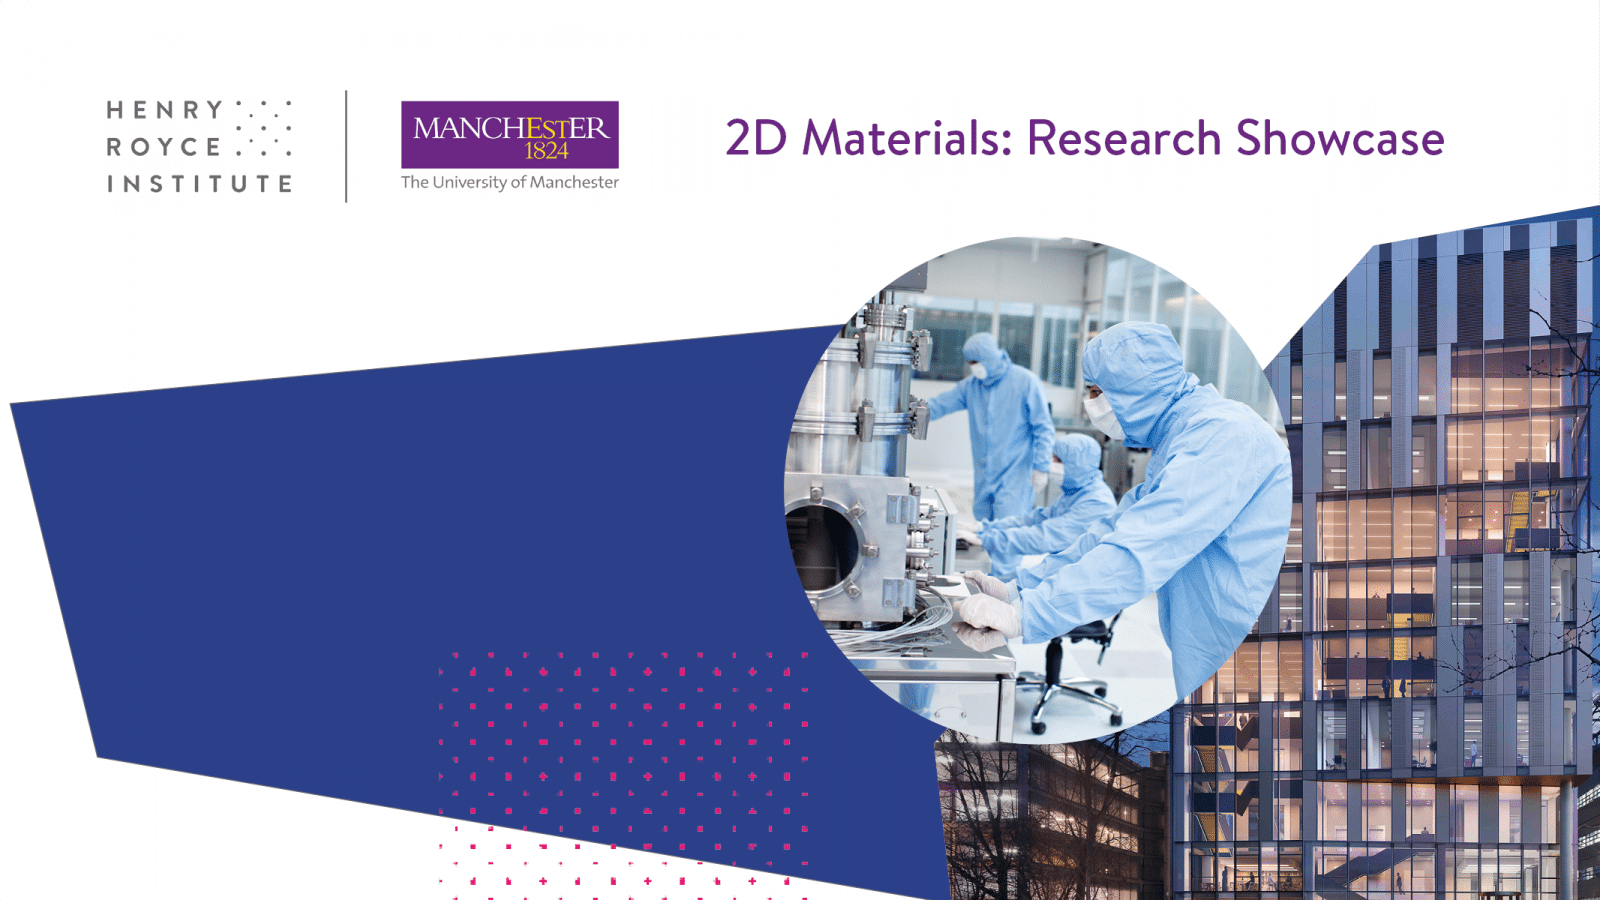 2D Materials Research Showcase